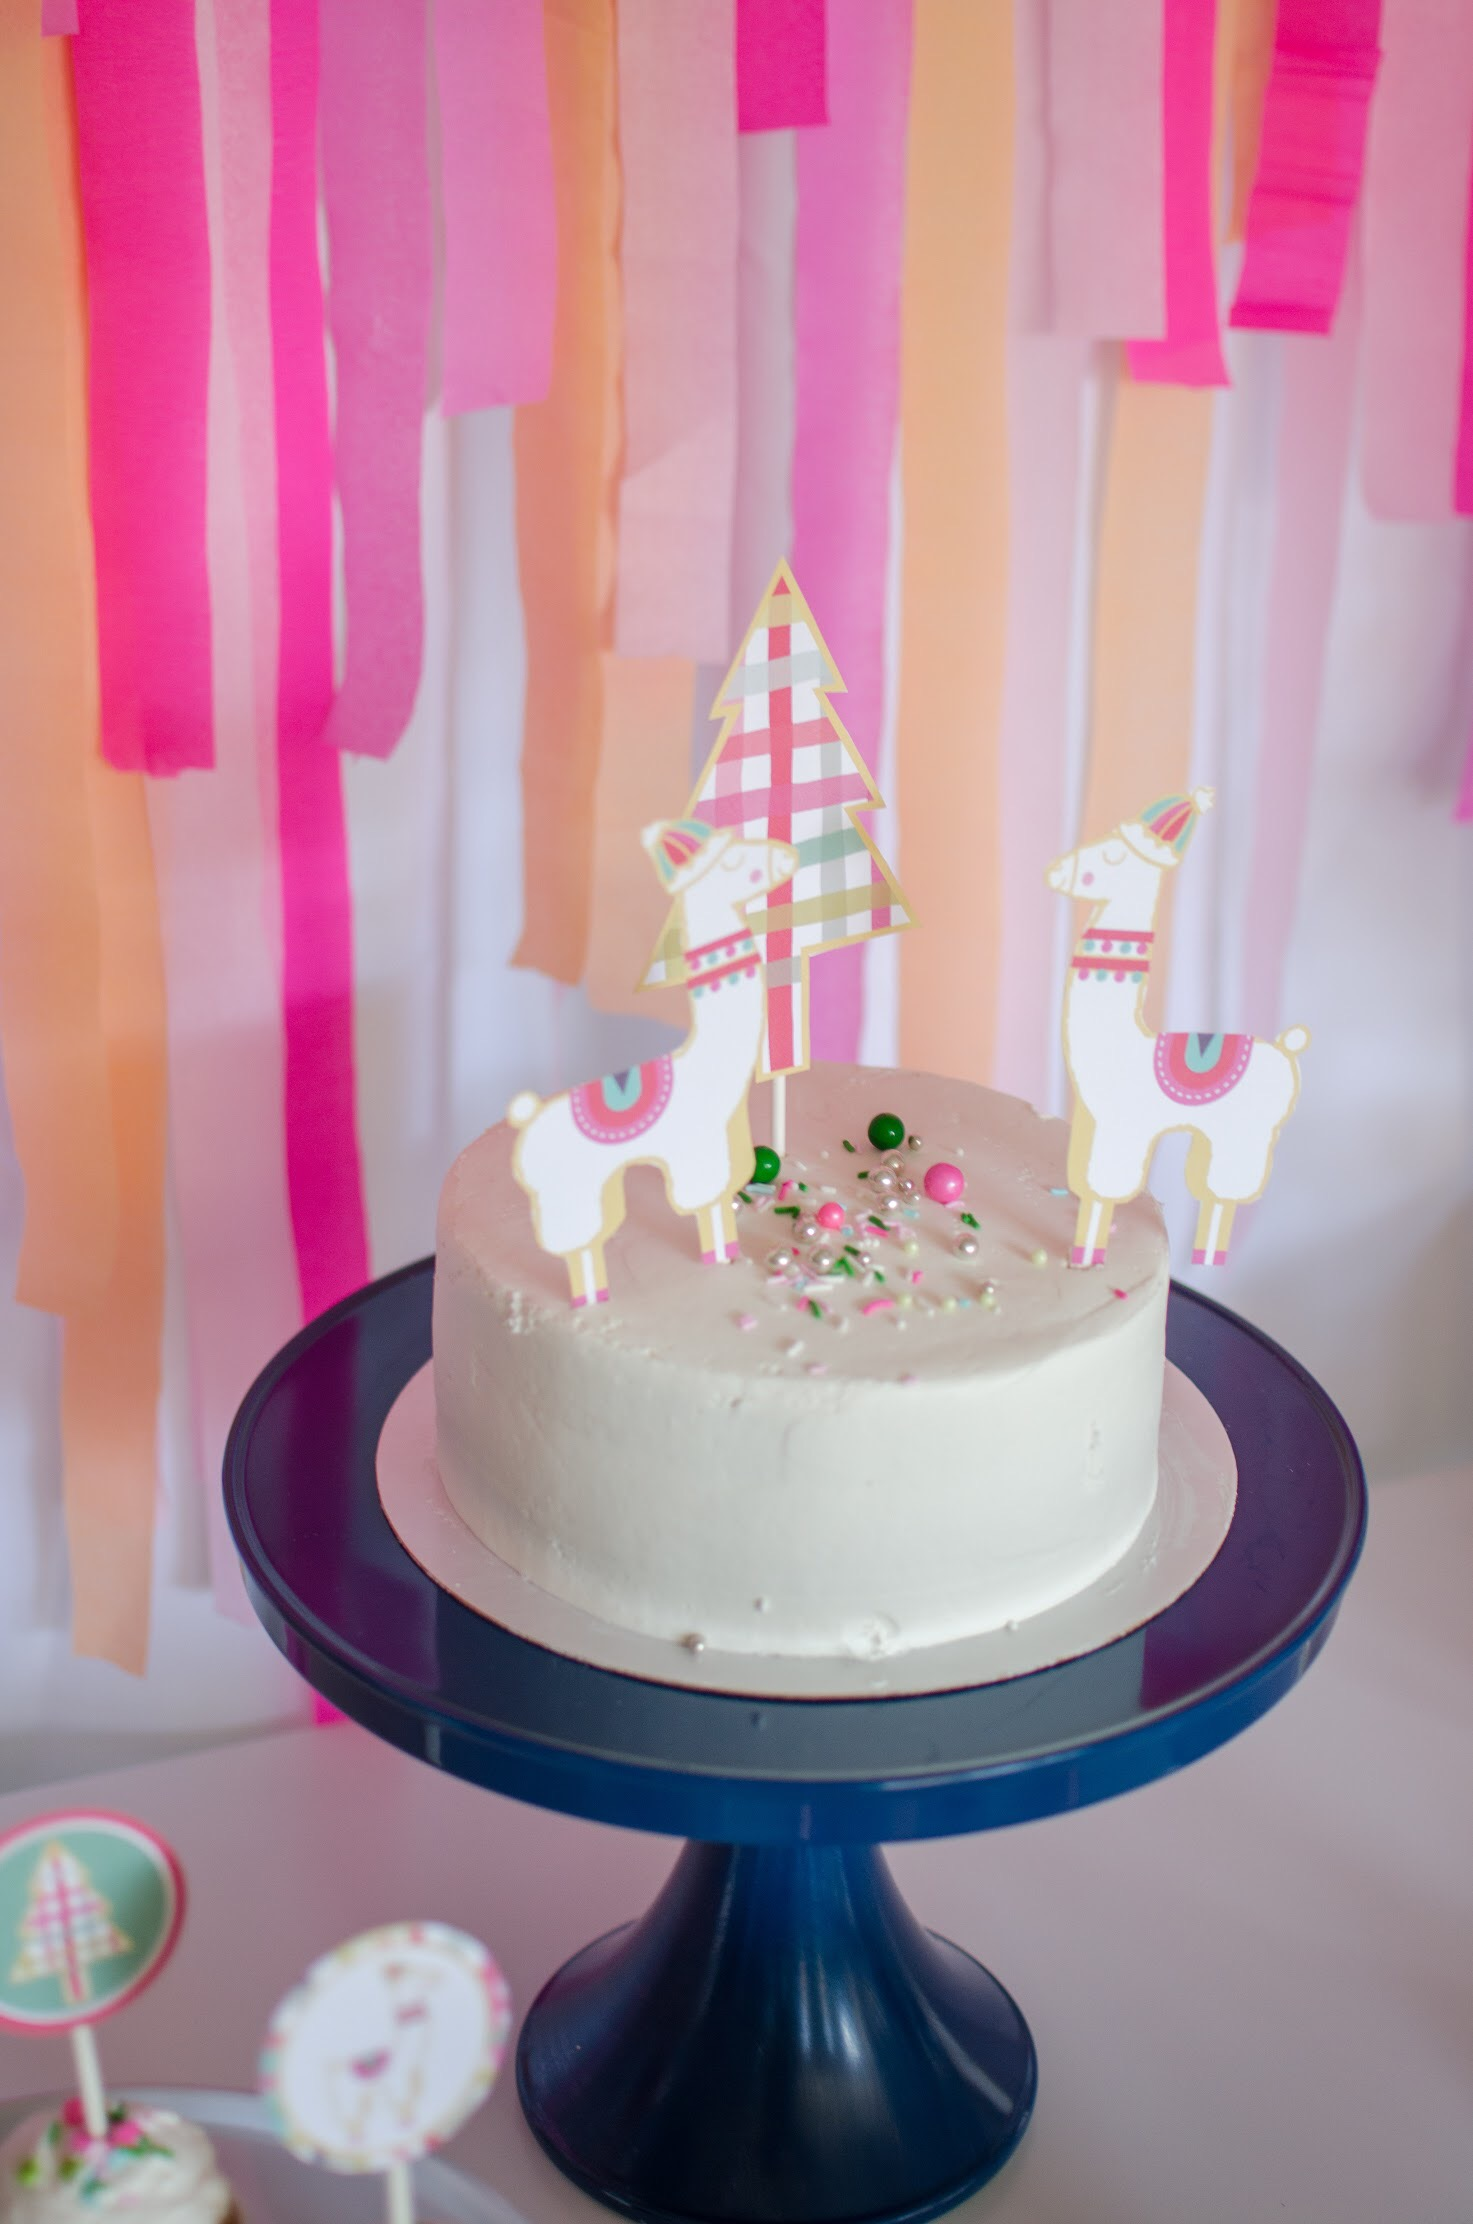 Christmas llama themed cake is perfect for your holiday party. See more from this llama Christmas party by Mint Event Design at www.minteventdesign.com and download your free printables #holidayparty #partyideas #christmasparty #holidaypartyideas #llamaparty #llamalove #partyprintables #freeprintables